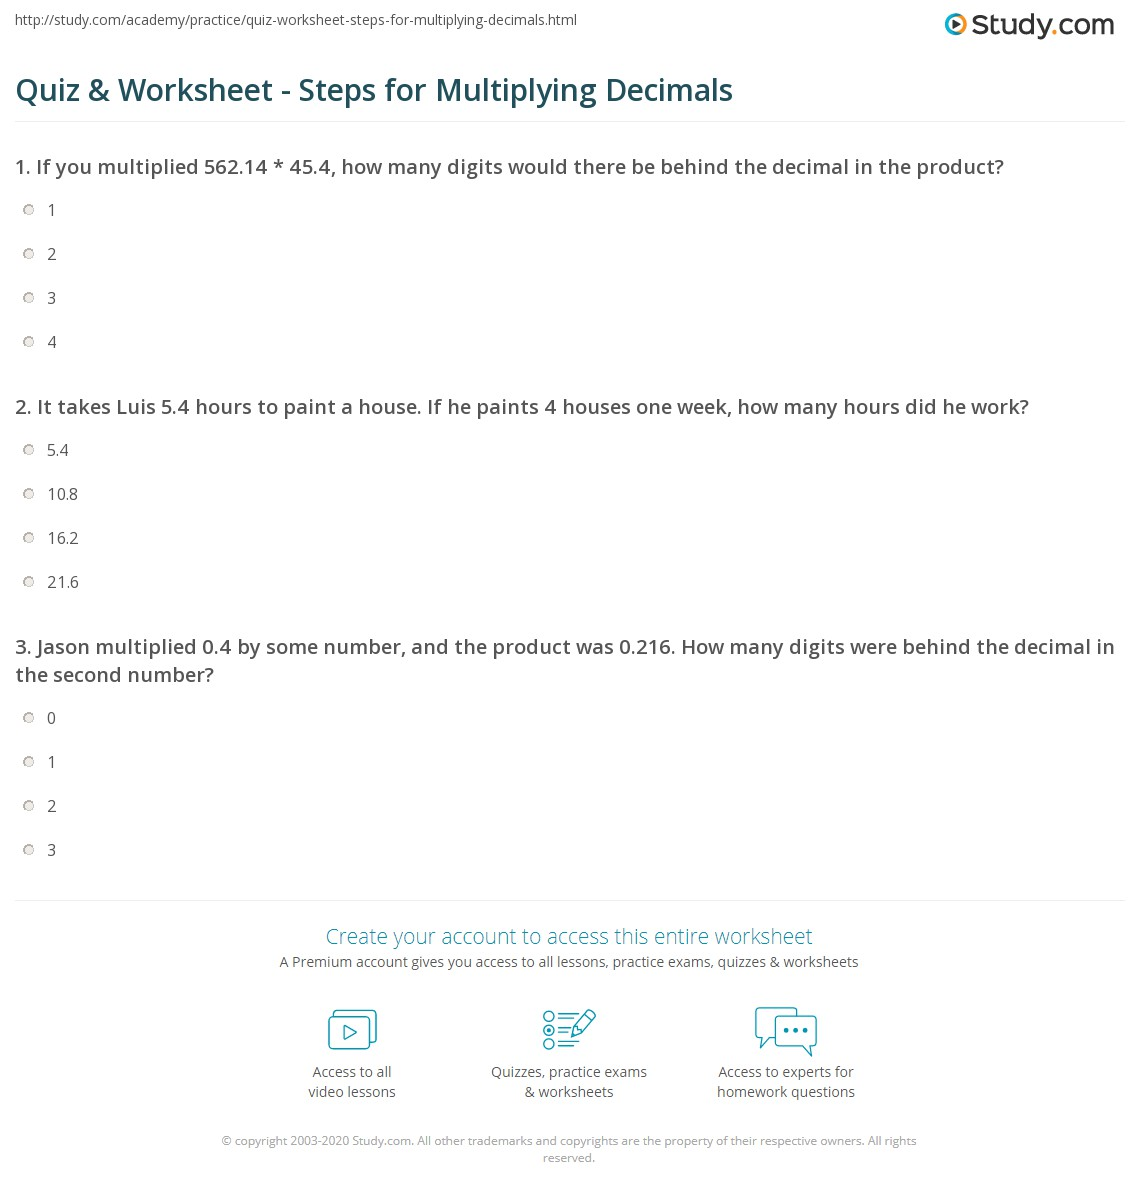 Multiplying Decimals Steps